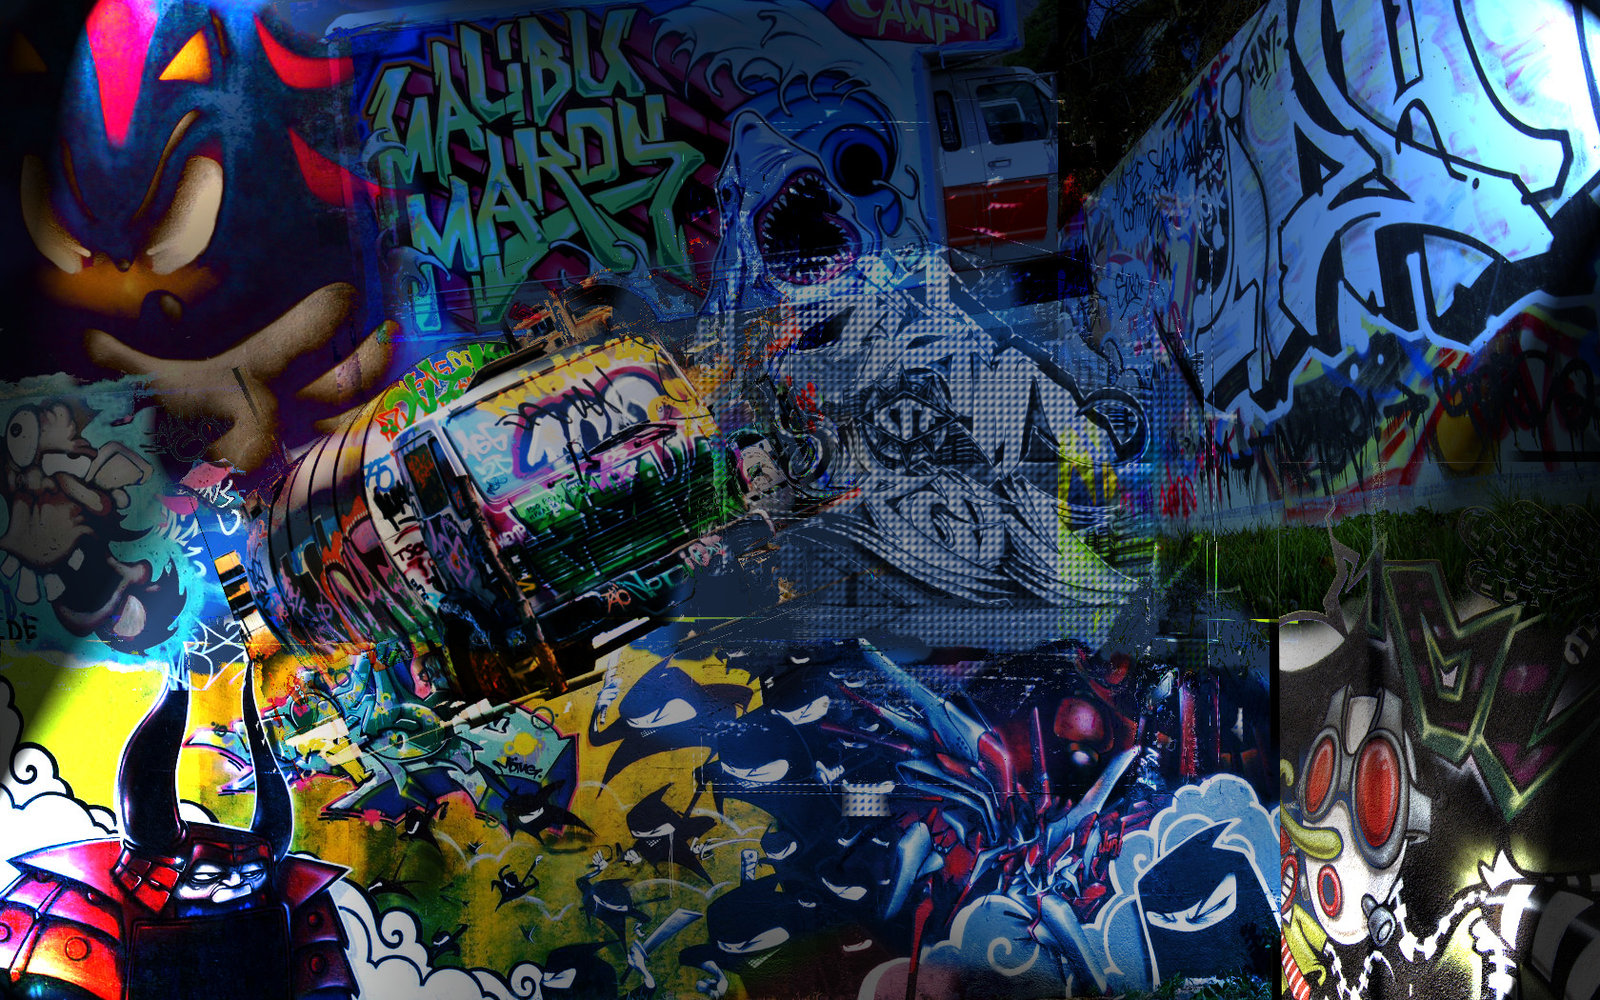 http://2.bp.blogspot.com/-tkxX4BHn8ow/T5bArkdwCwI/AAAAAAAADg4/xuWuBQyGf8I/s1600/graffiti+rebellion+-+underground+rap+-+high+resolution.jpg